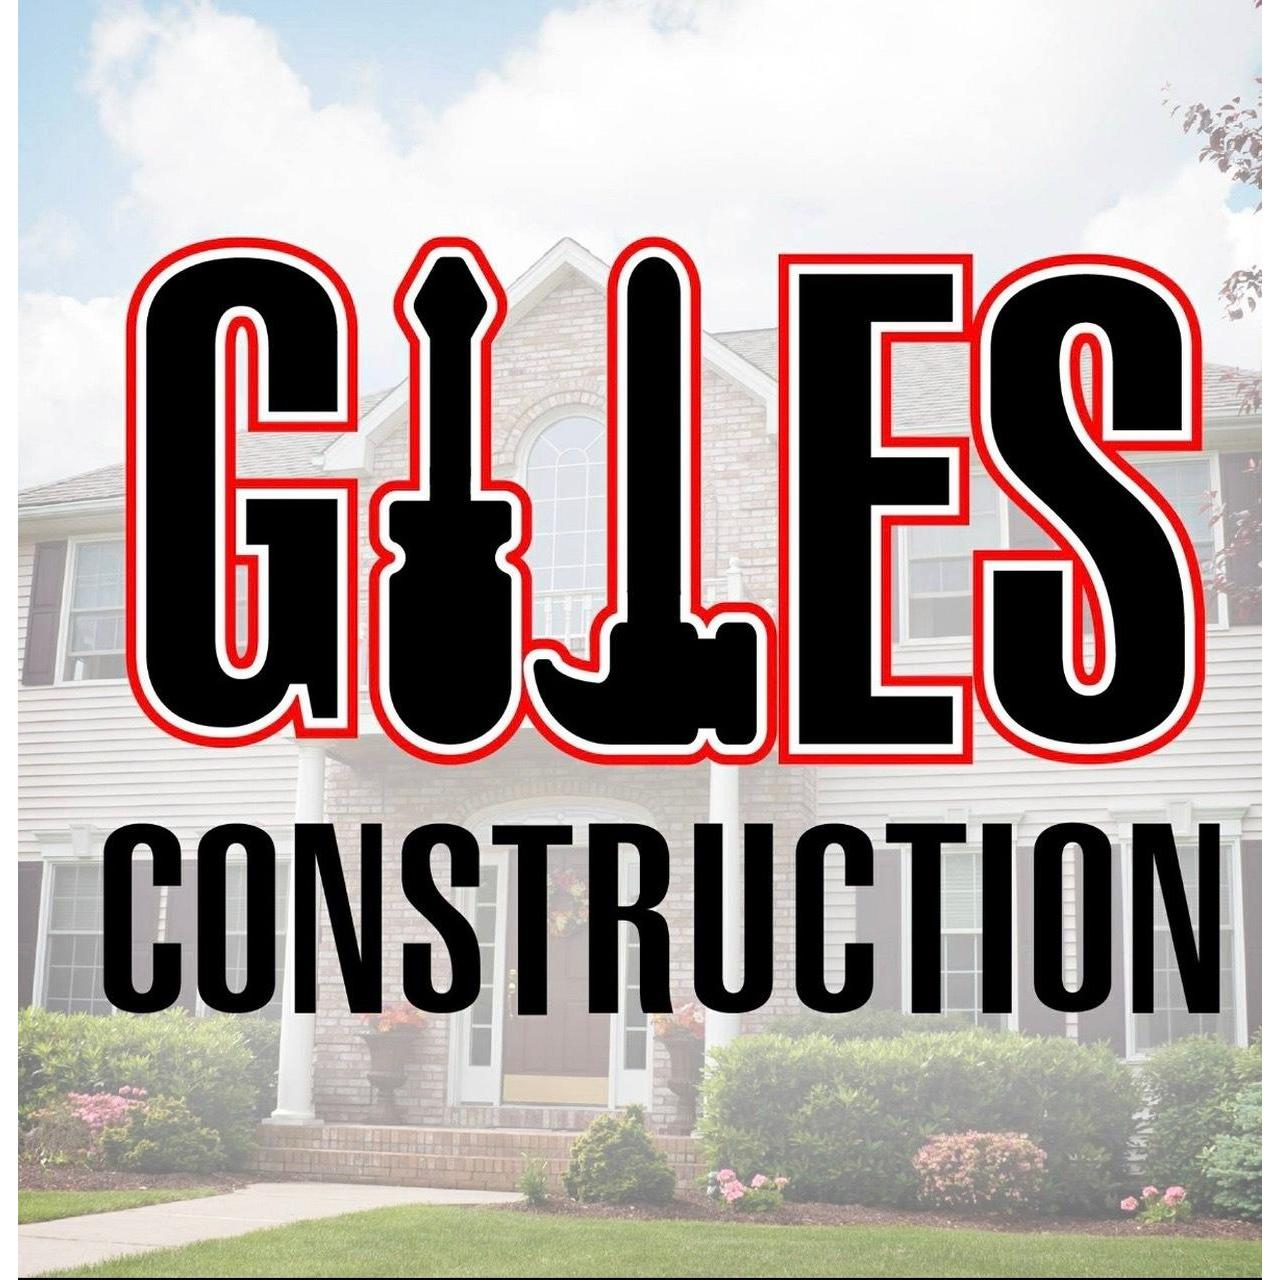 Giles Construction image 5